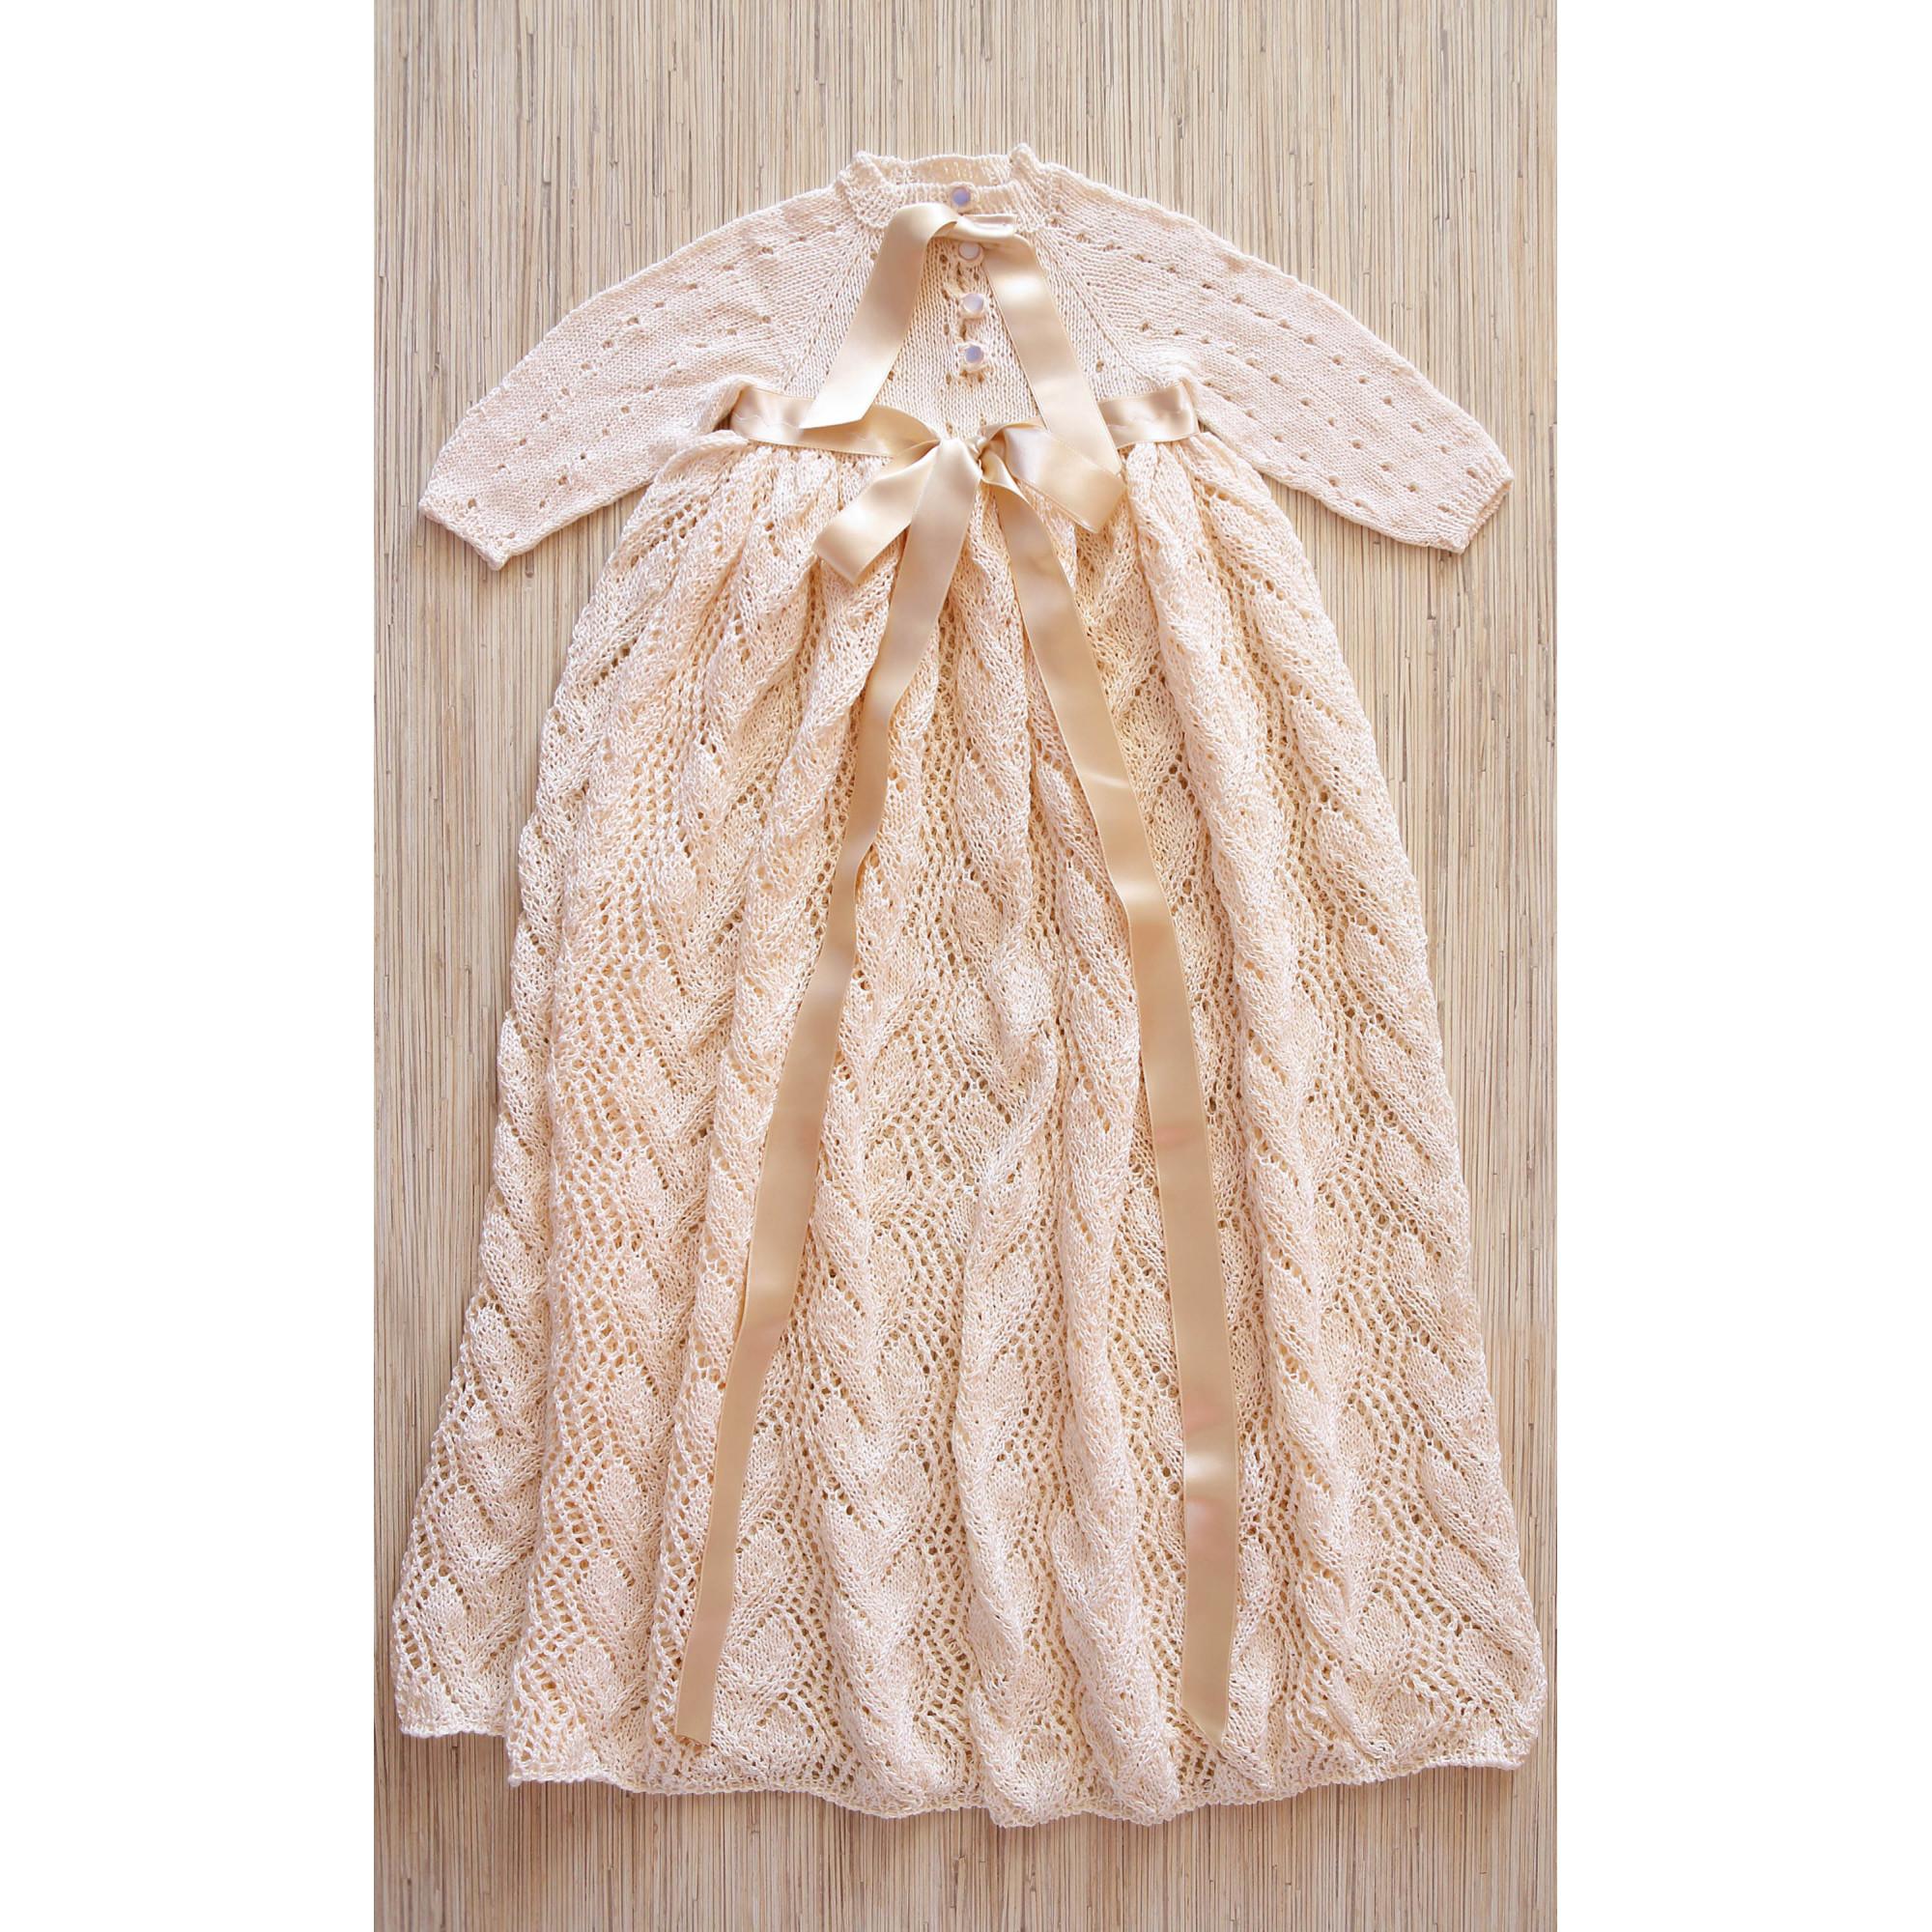 Seamless Baby Dress Loosely Knit Christening Dress 18 months of